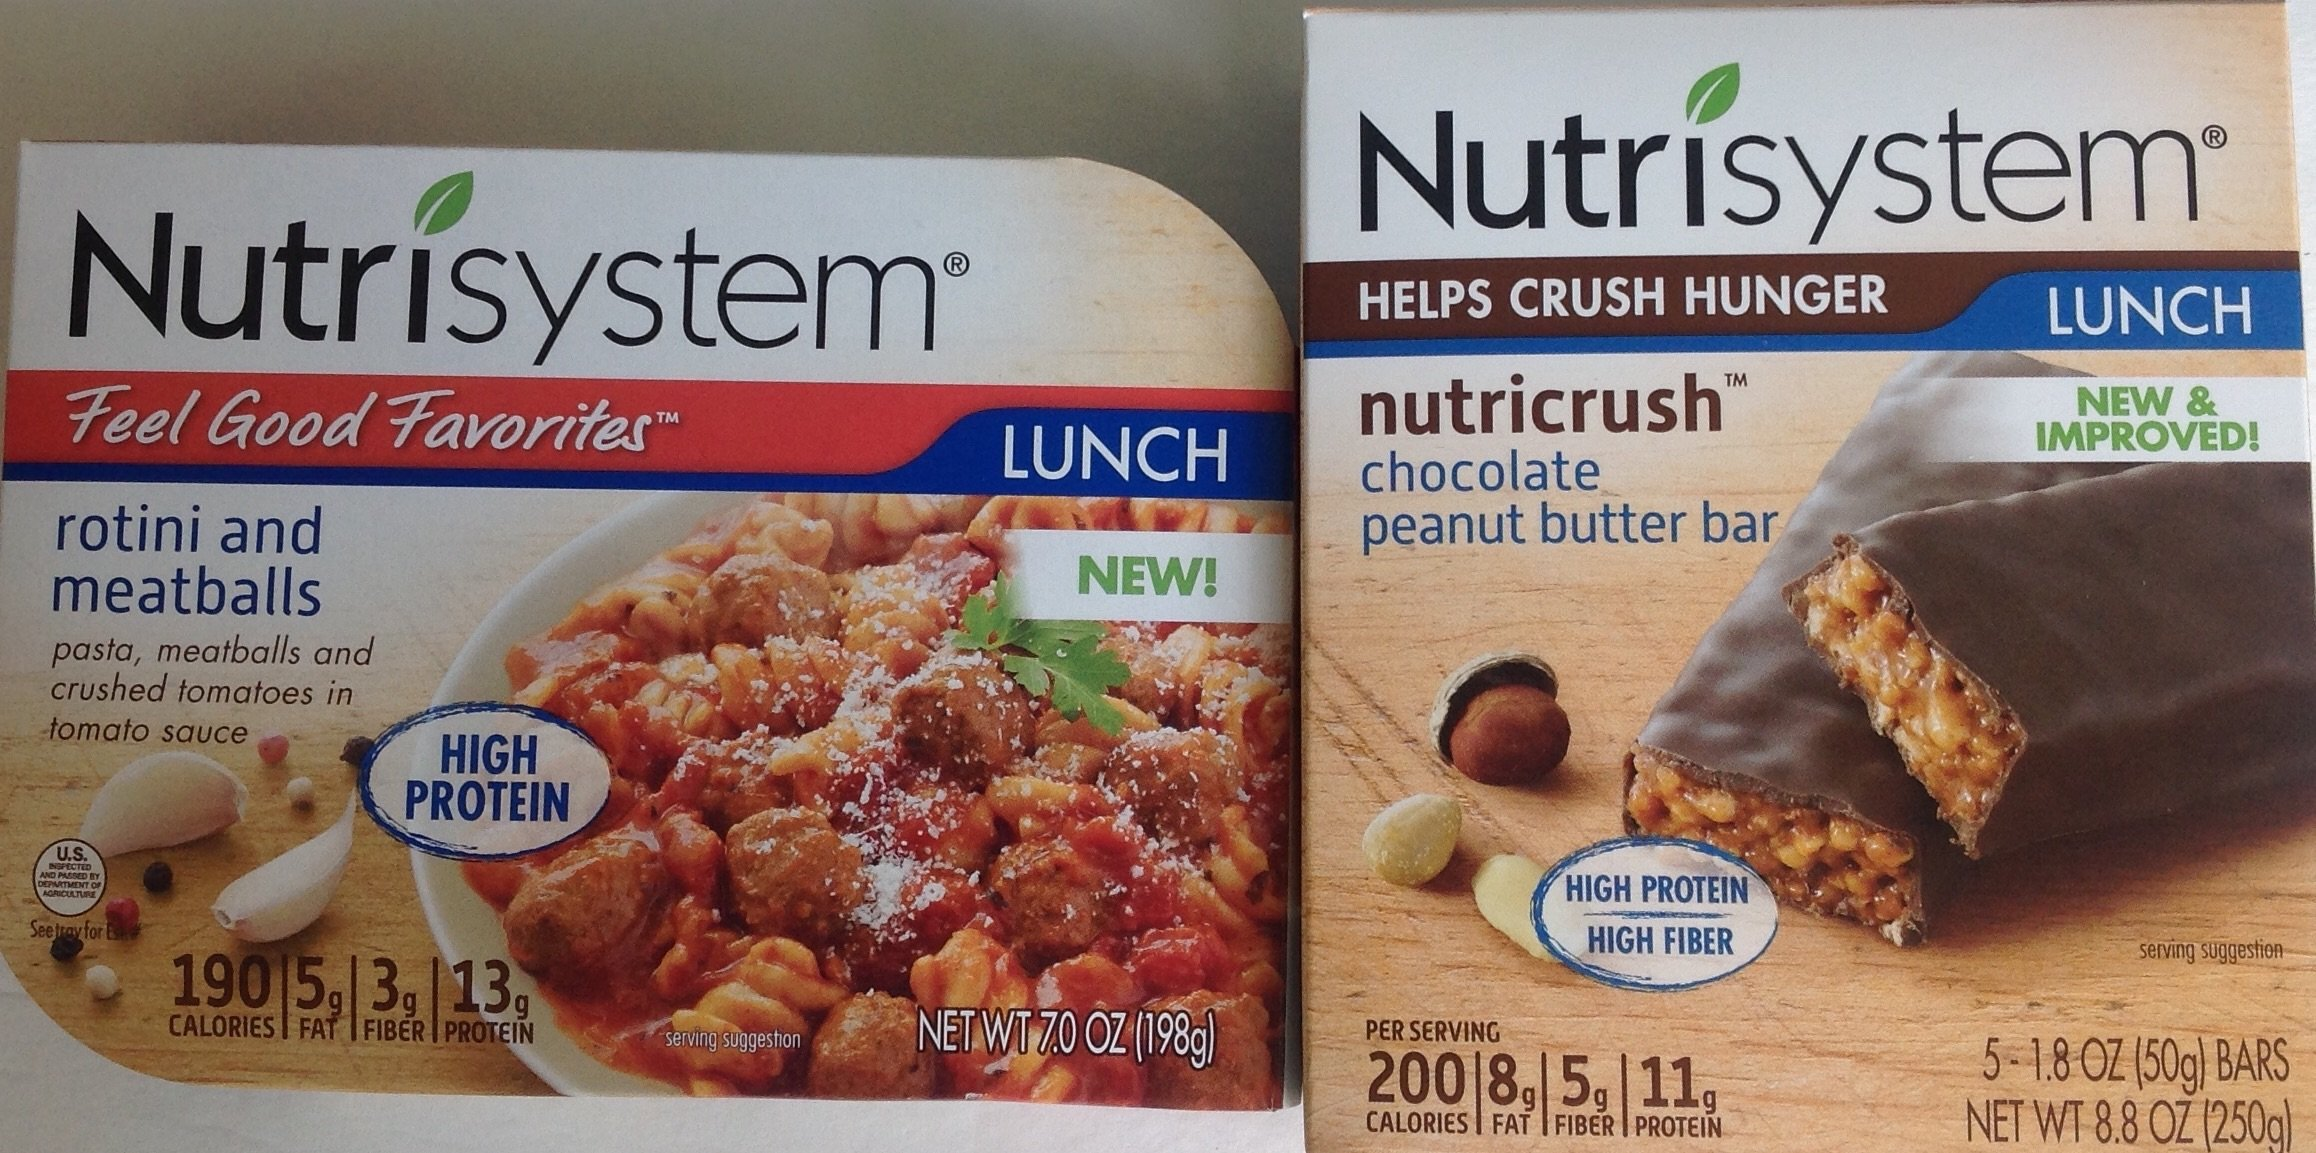 Nutrisystem Rotini and Meatballs with Peanut Butter Bar Lunch Bundle (1 Pack of Each)